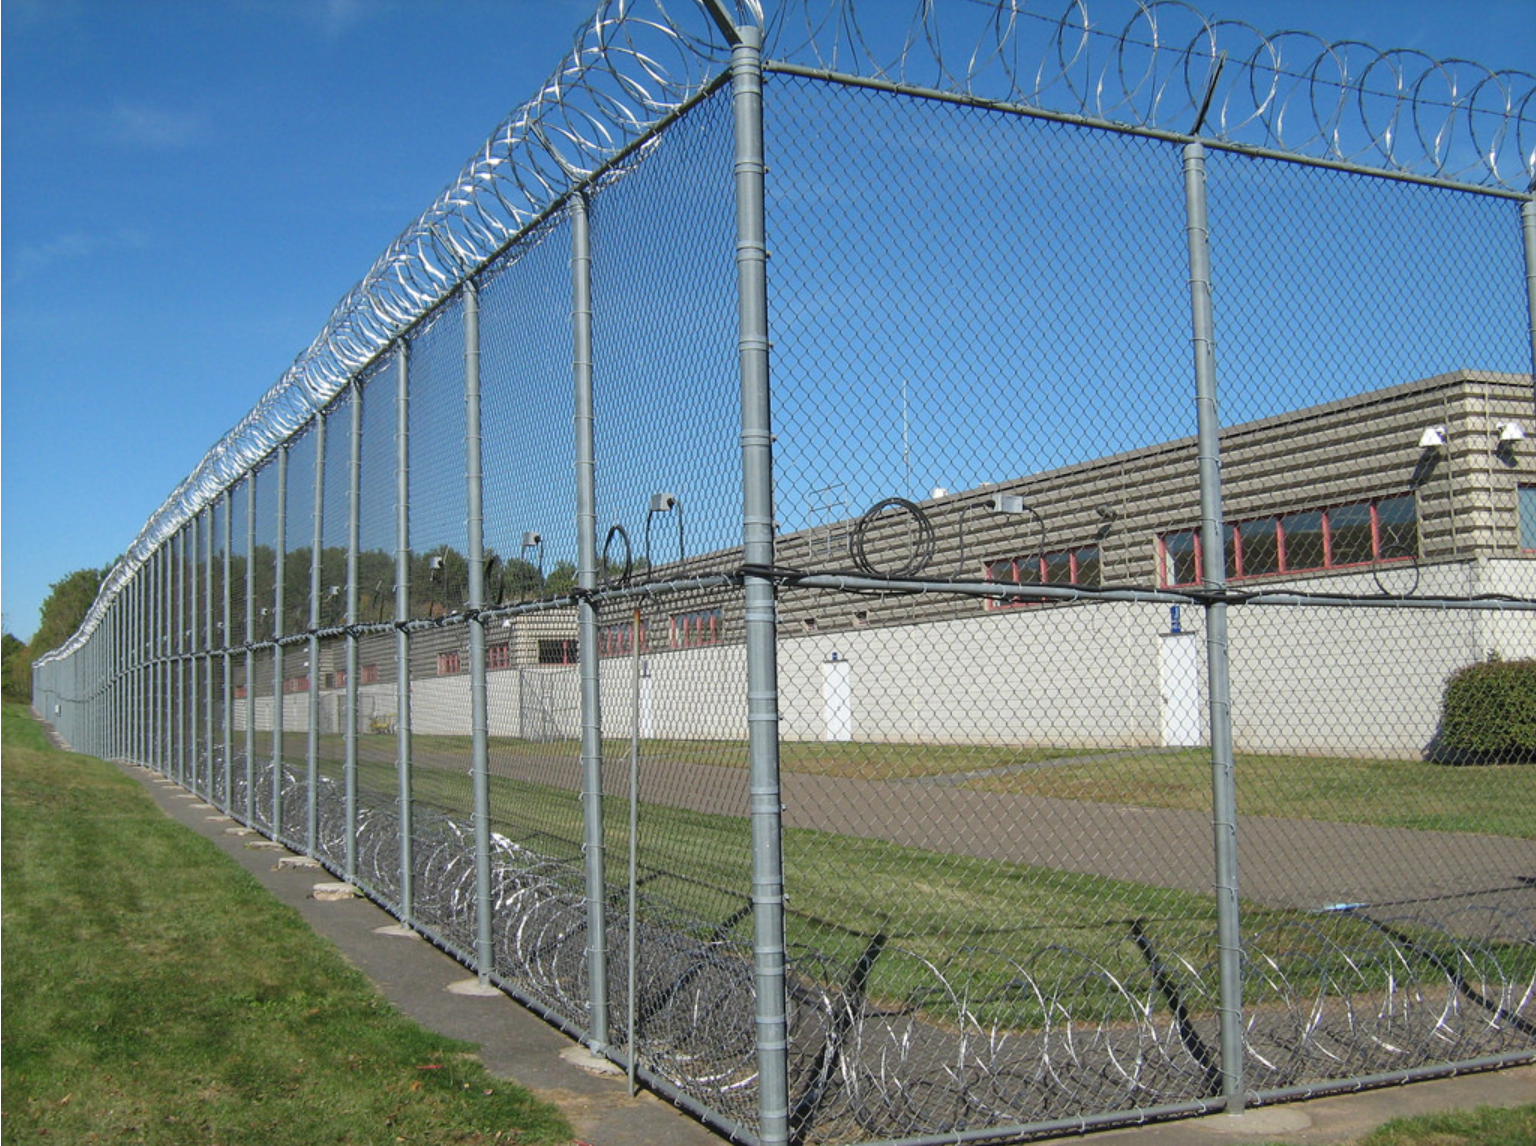 Dwindling oversight heightens concern over medical, mental health care for inmates